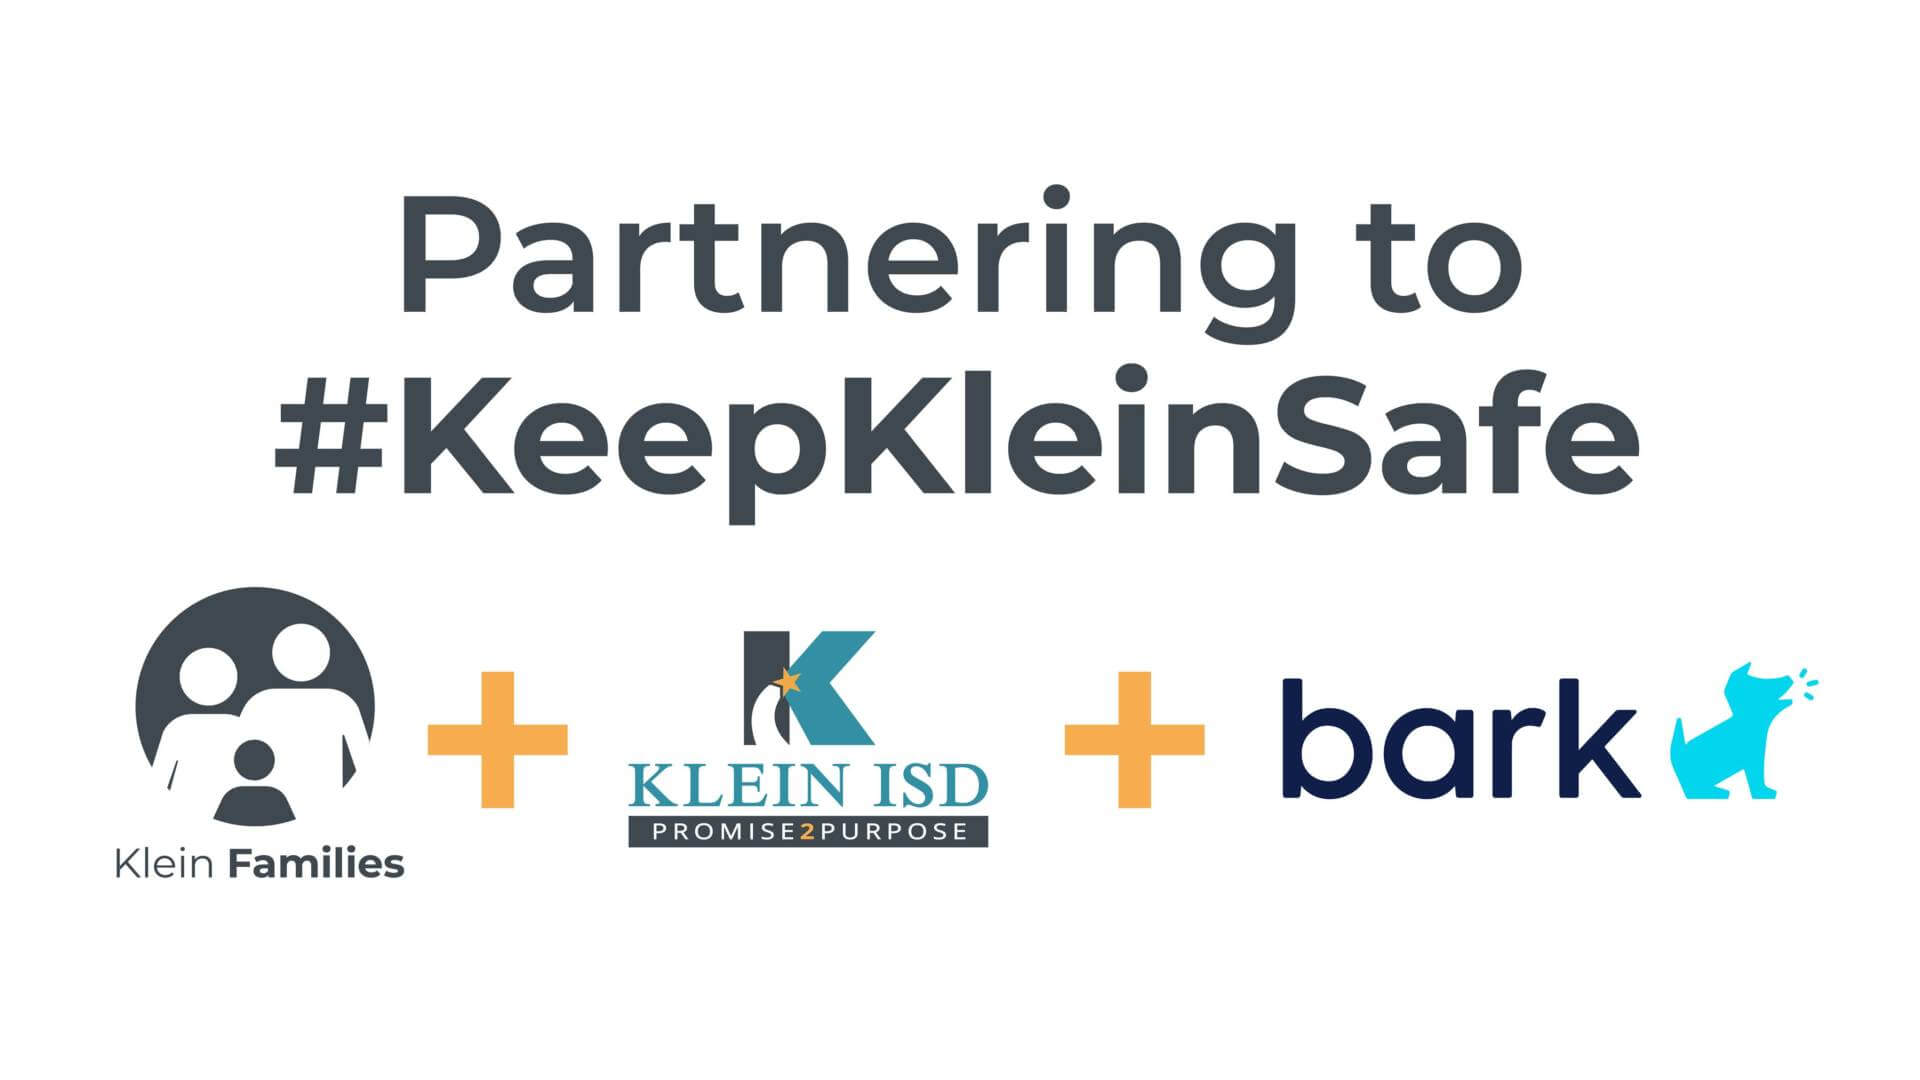 Klein ISD Partnering with Families to Monitor District-issued Student Accounts